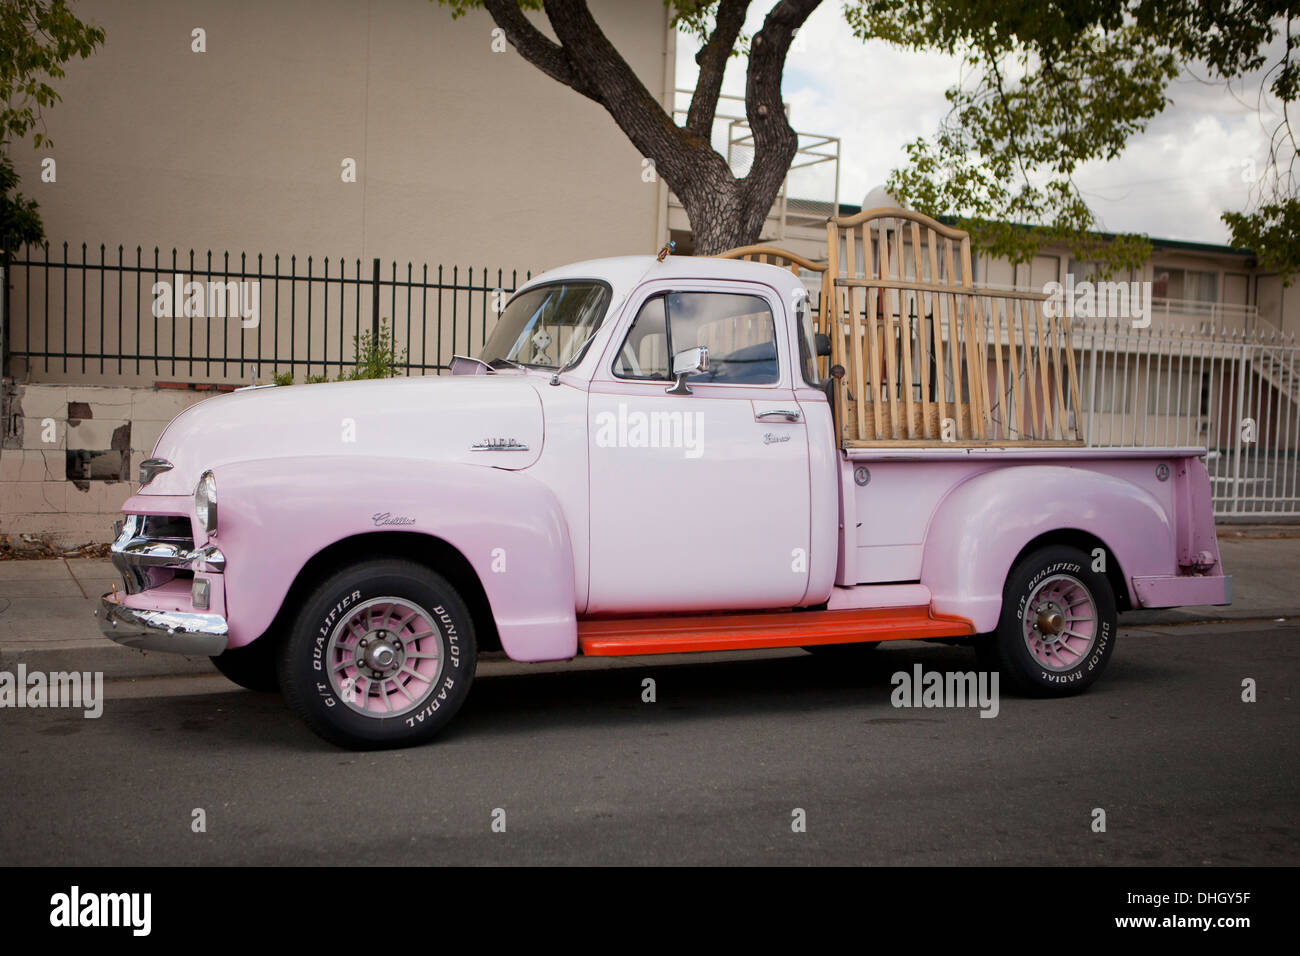 Classic Chevy Pickup Stock Photos 1954 Truck Vintage Chevrolet 3100 Parked On Side Of Road California Usa